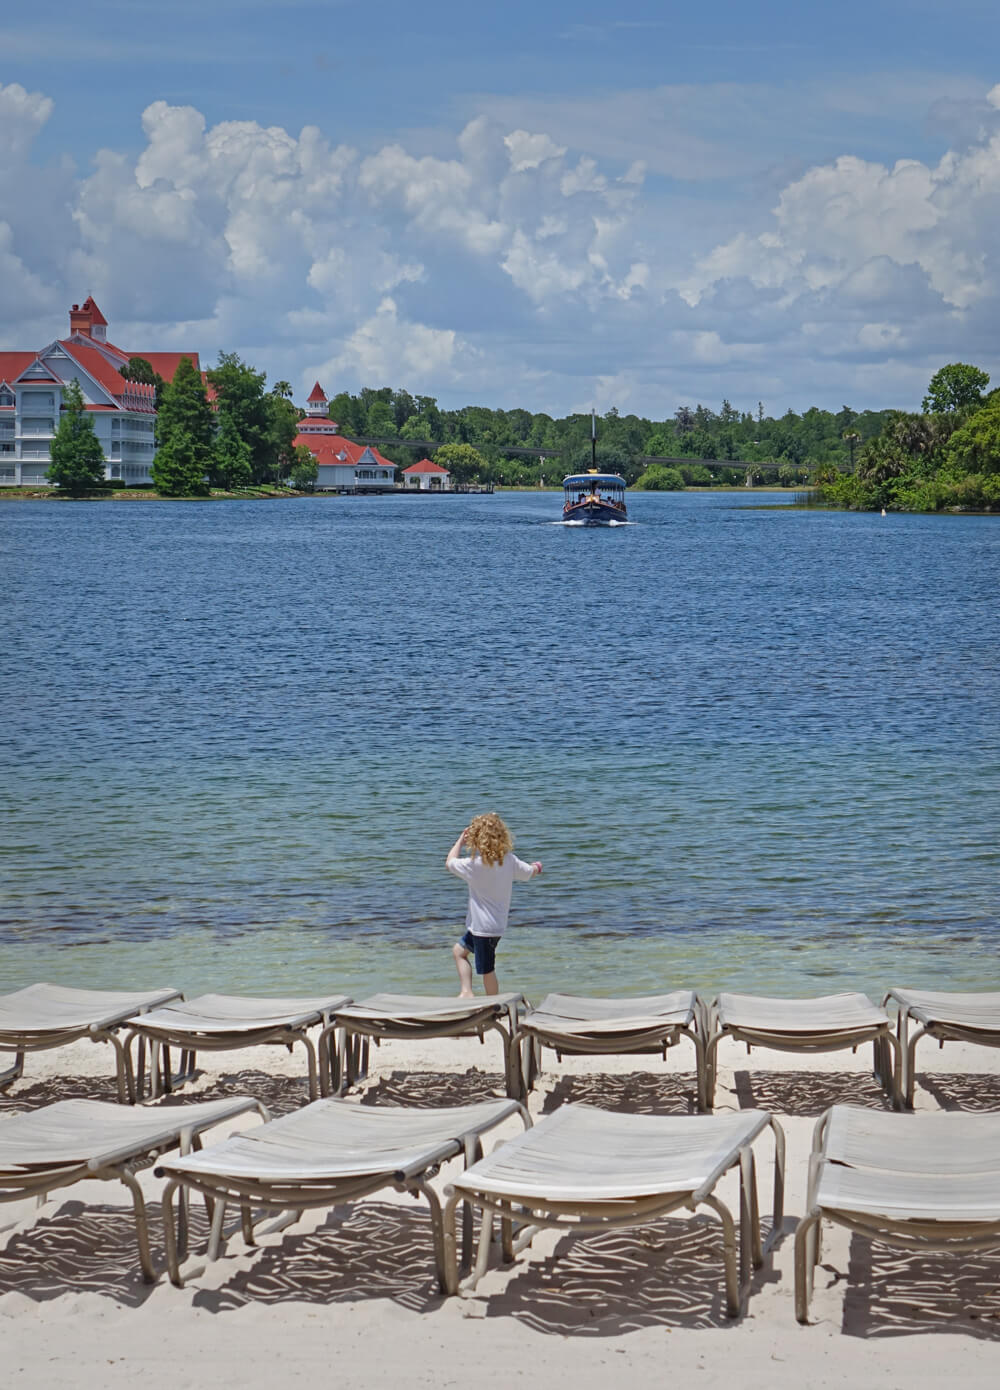 Disney's Deluxe Resorts - Disney's boat launch